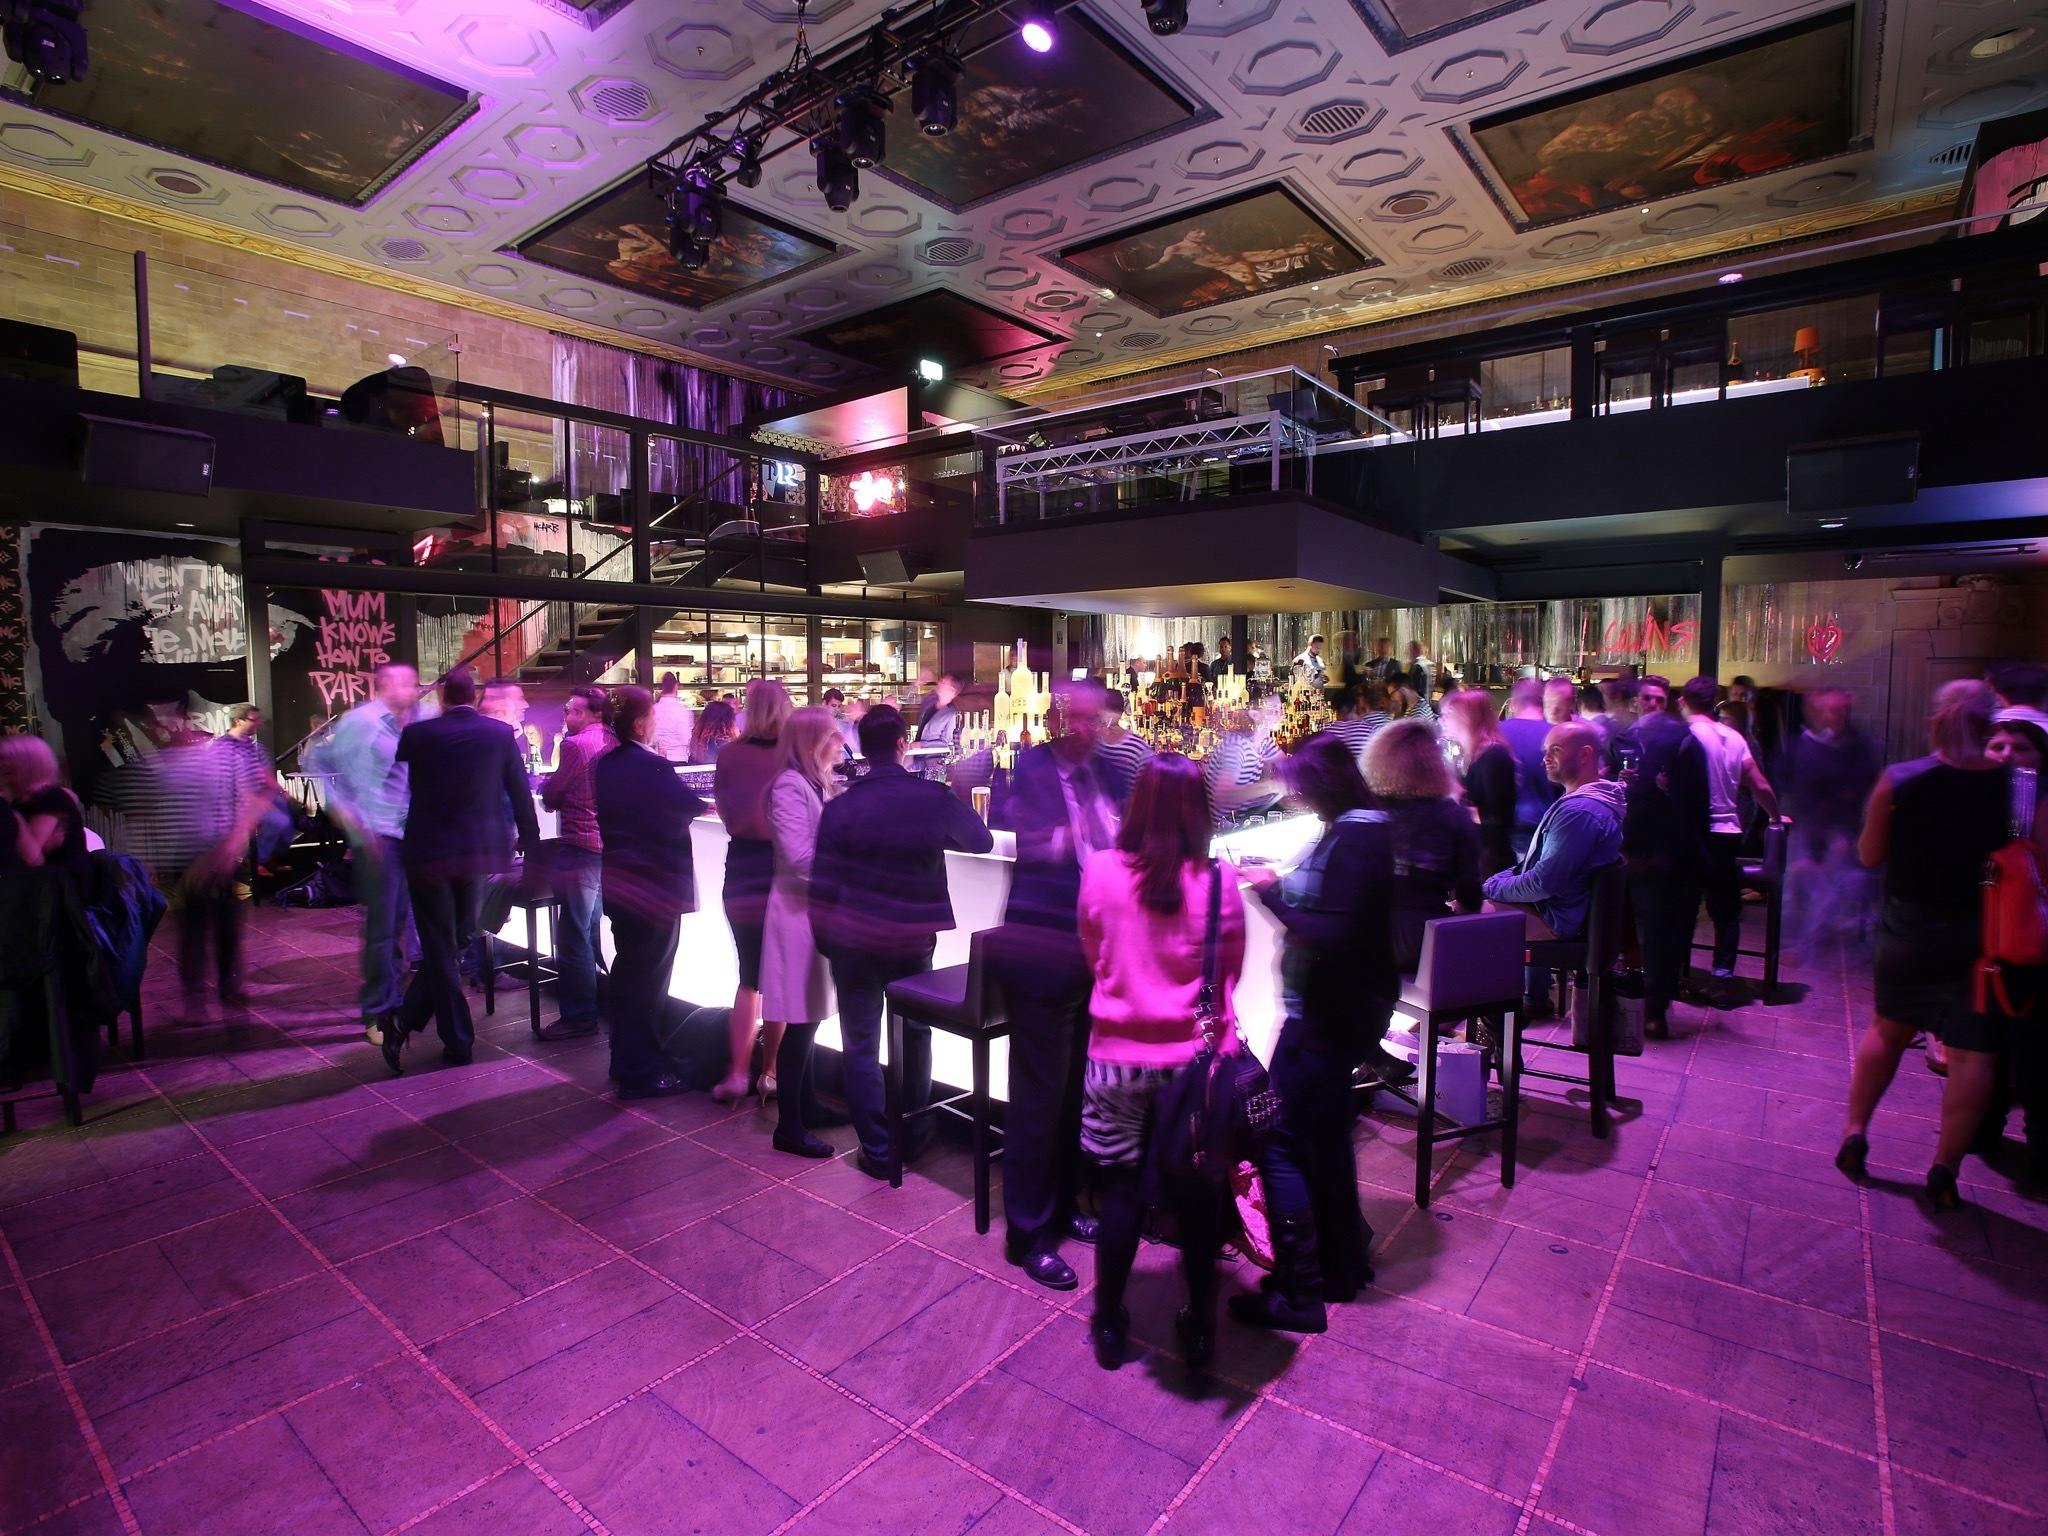 An interior shot of the main bar area with people lining around